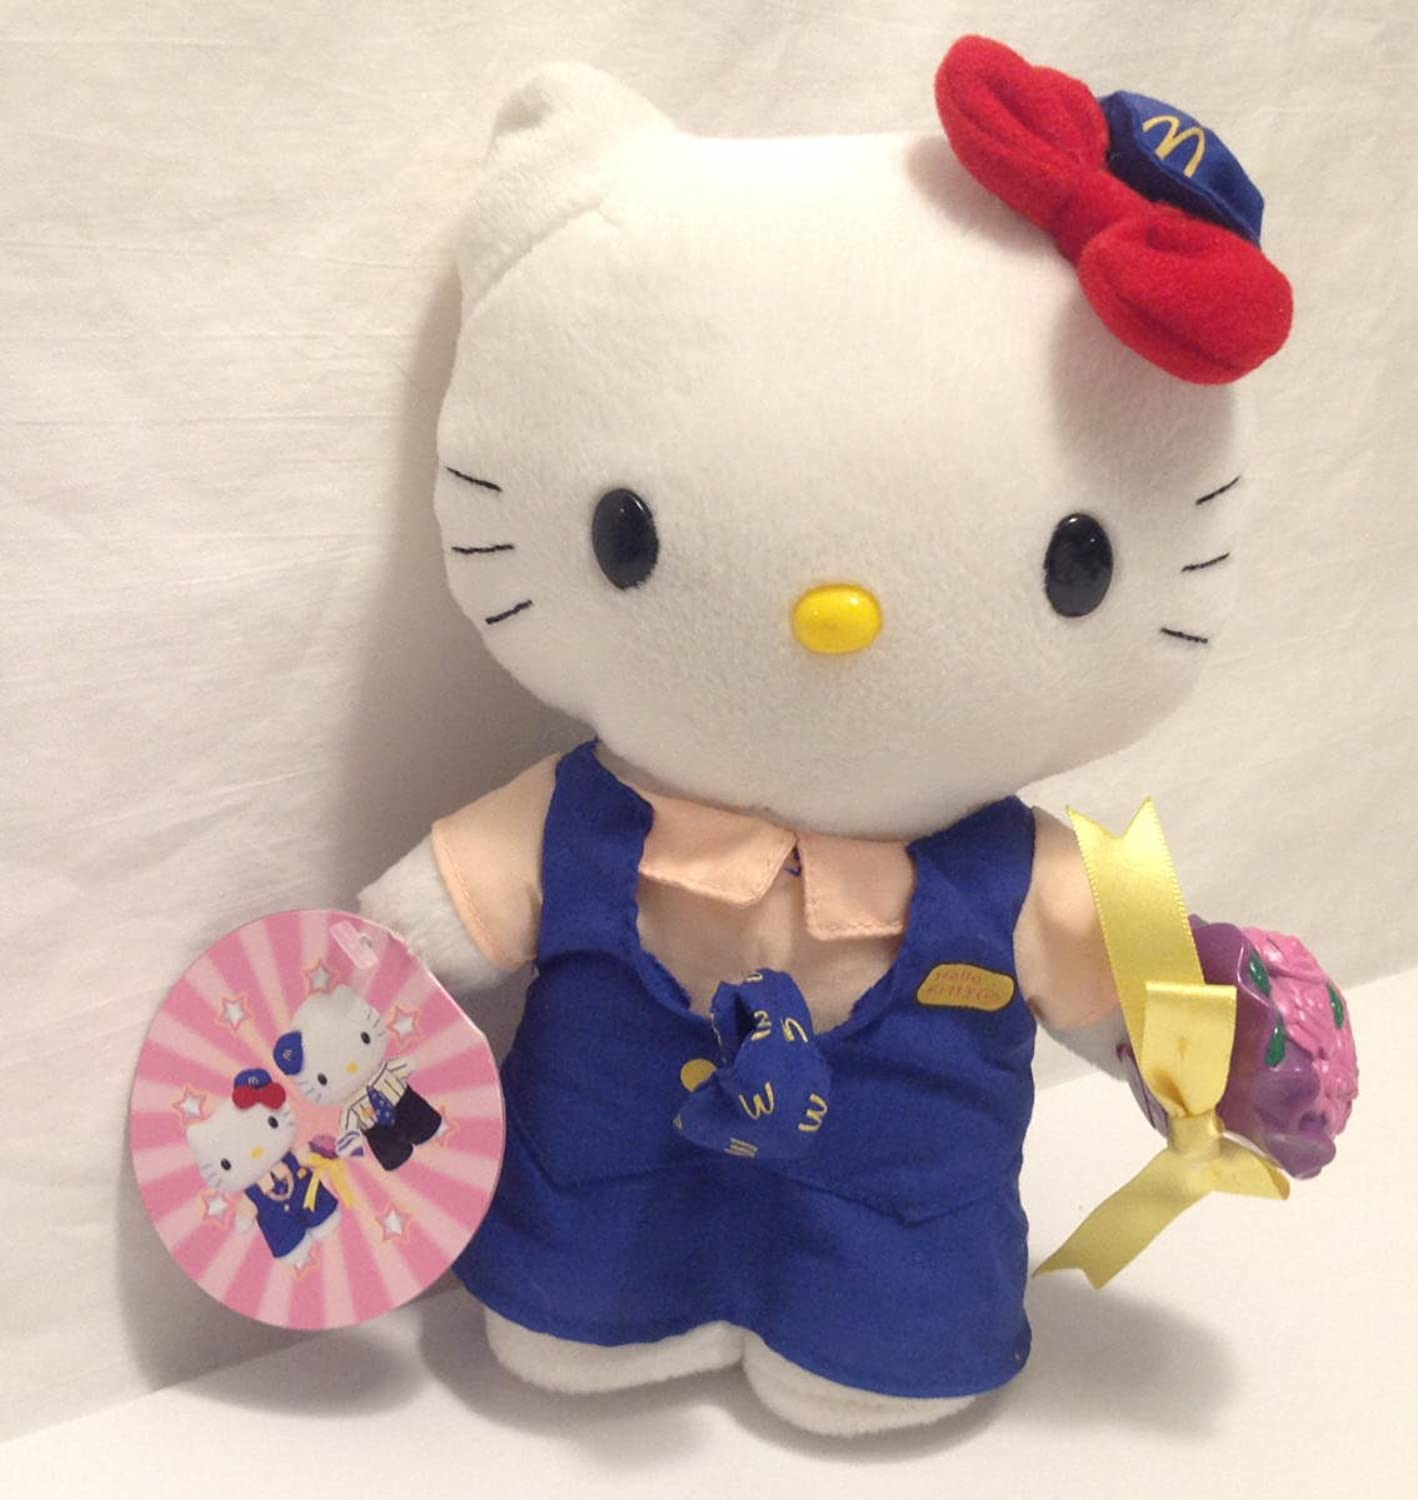 Sanrio McDonald's Crew Wedding 9  Plush Hello Kitty